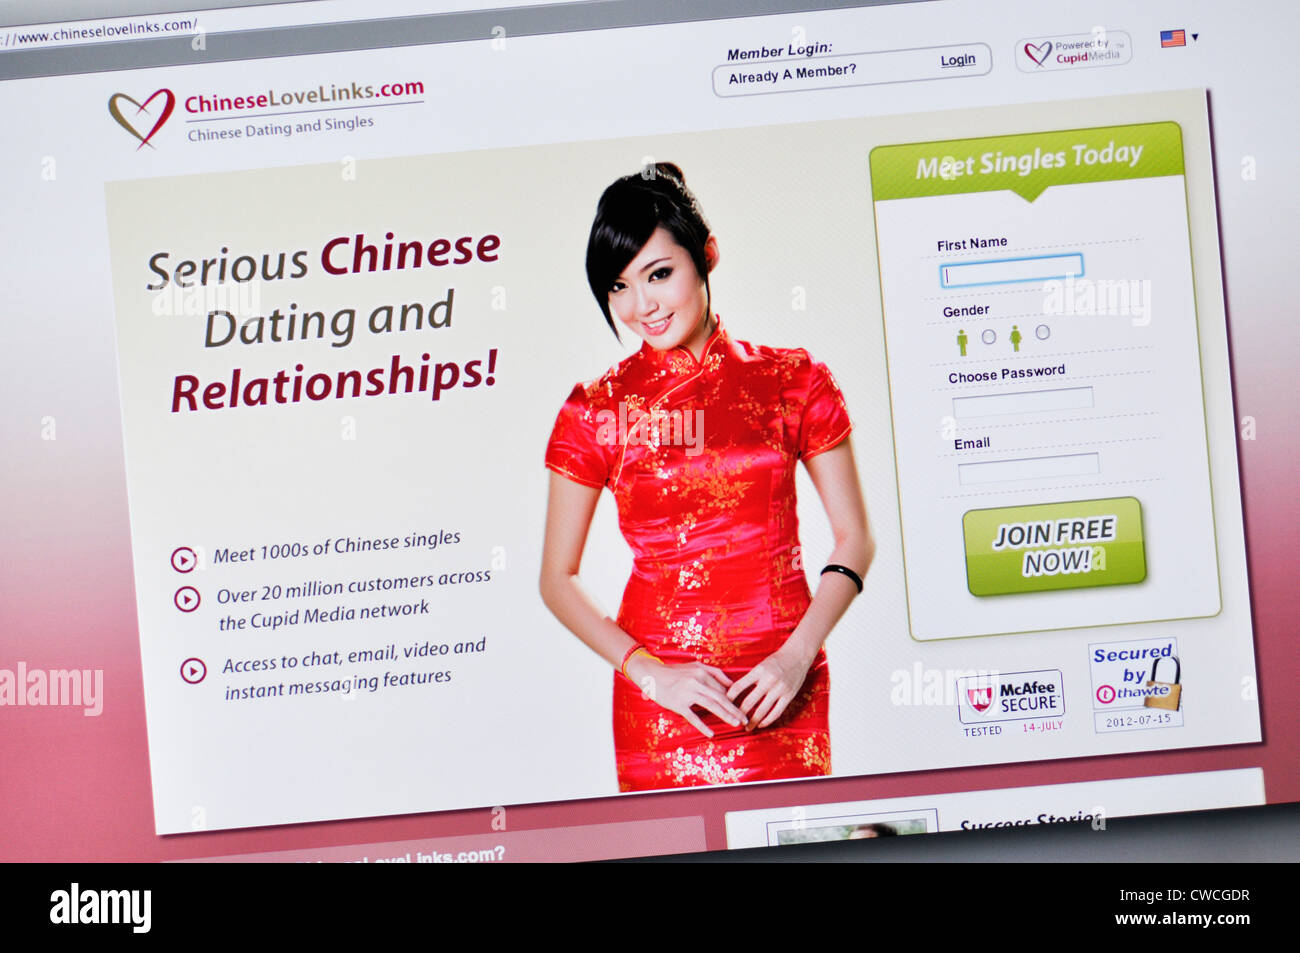 Dating-Website für Ausländer in China